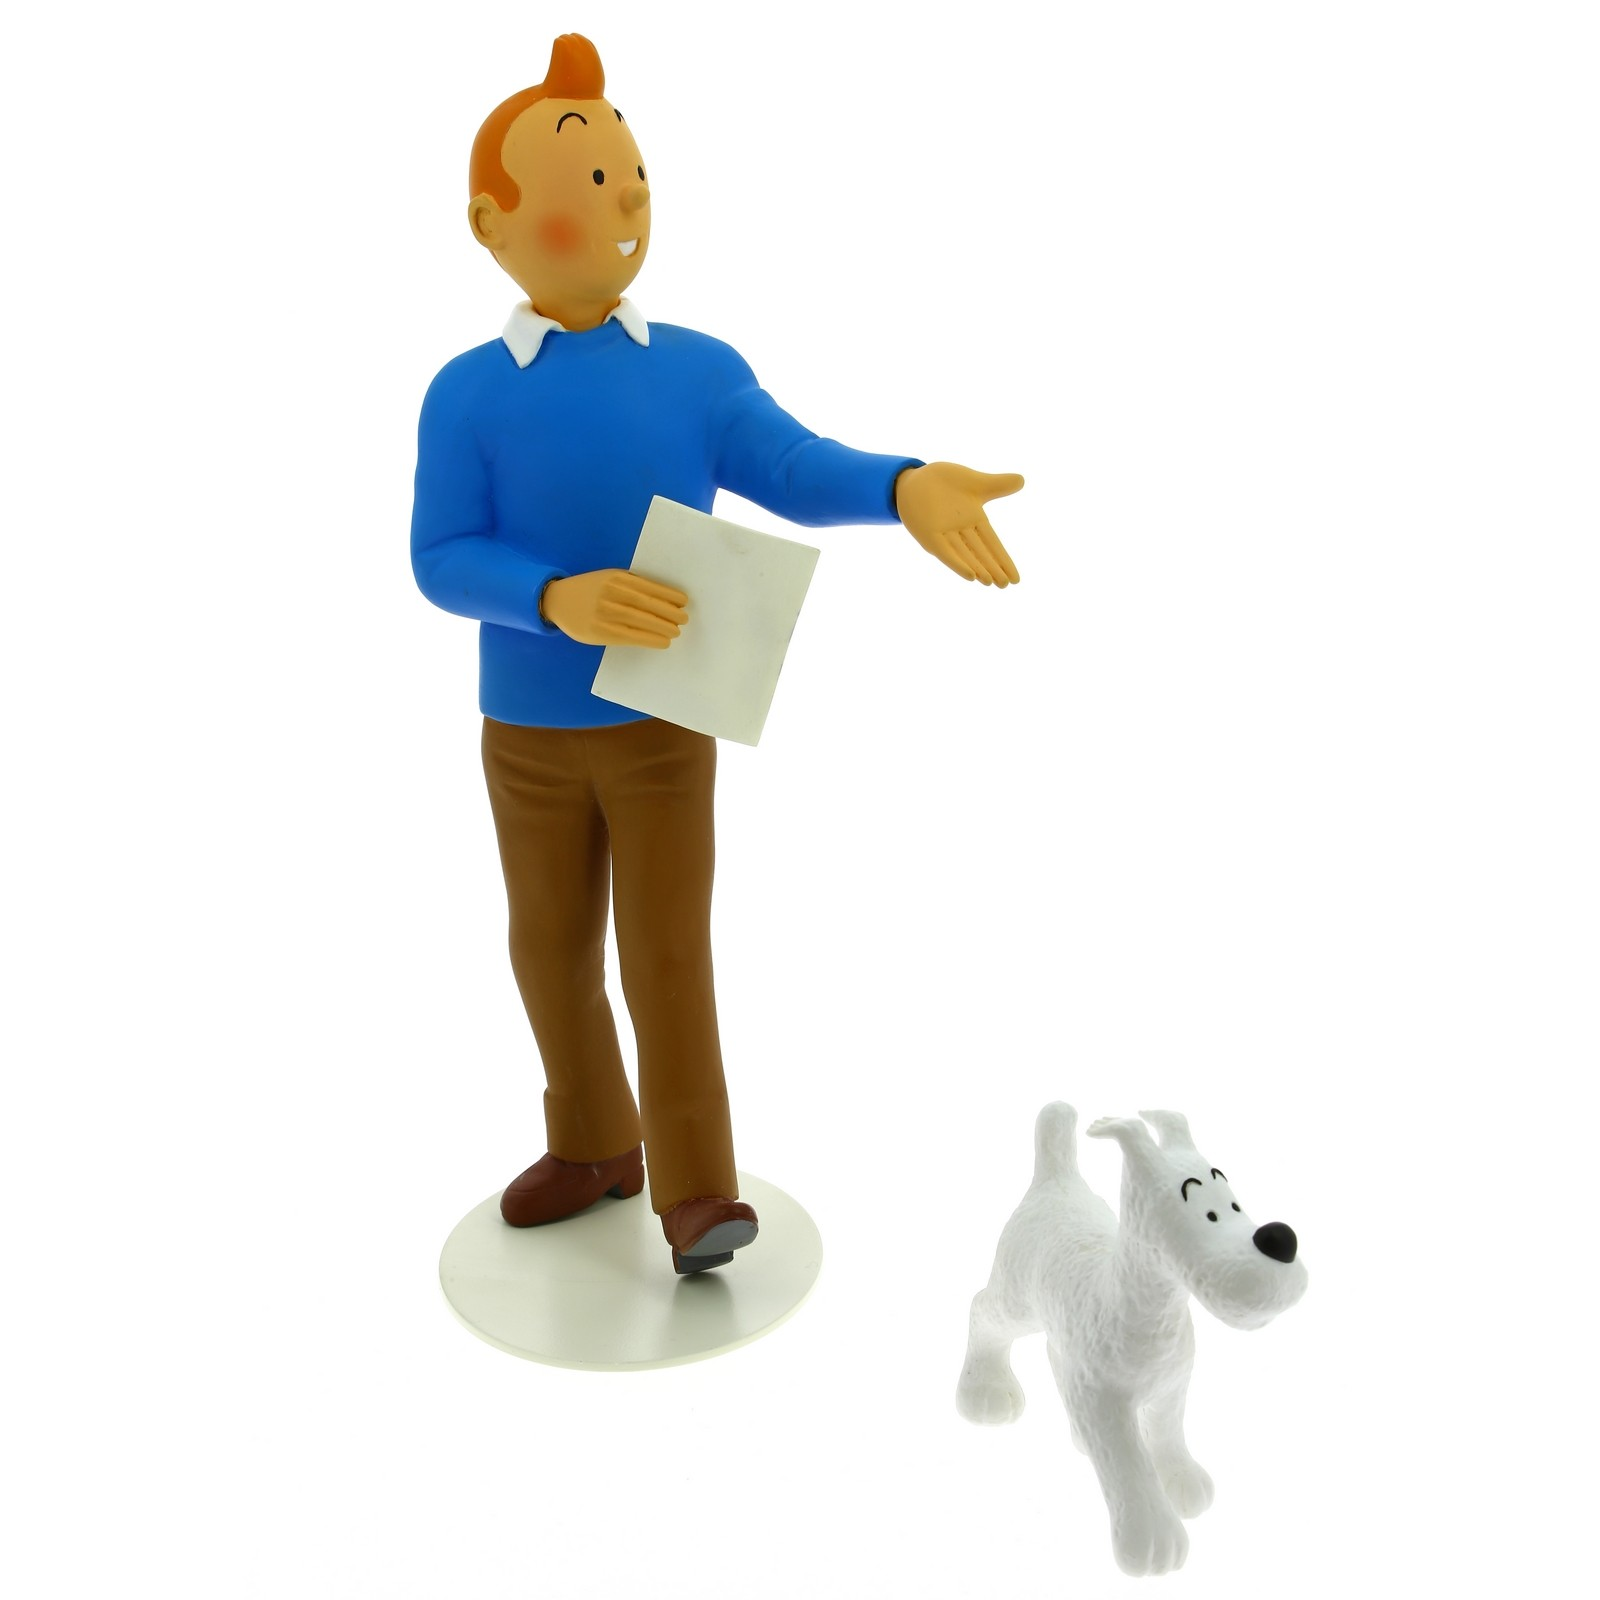 MUSEE IMAGINAIRE TINTIN ET MILOU